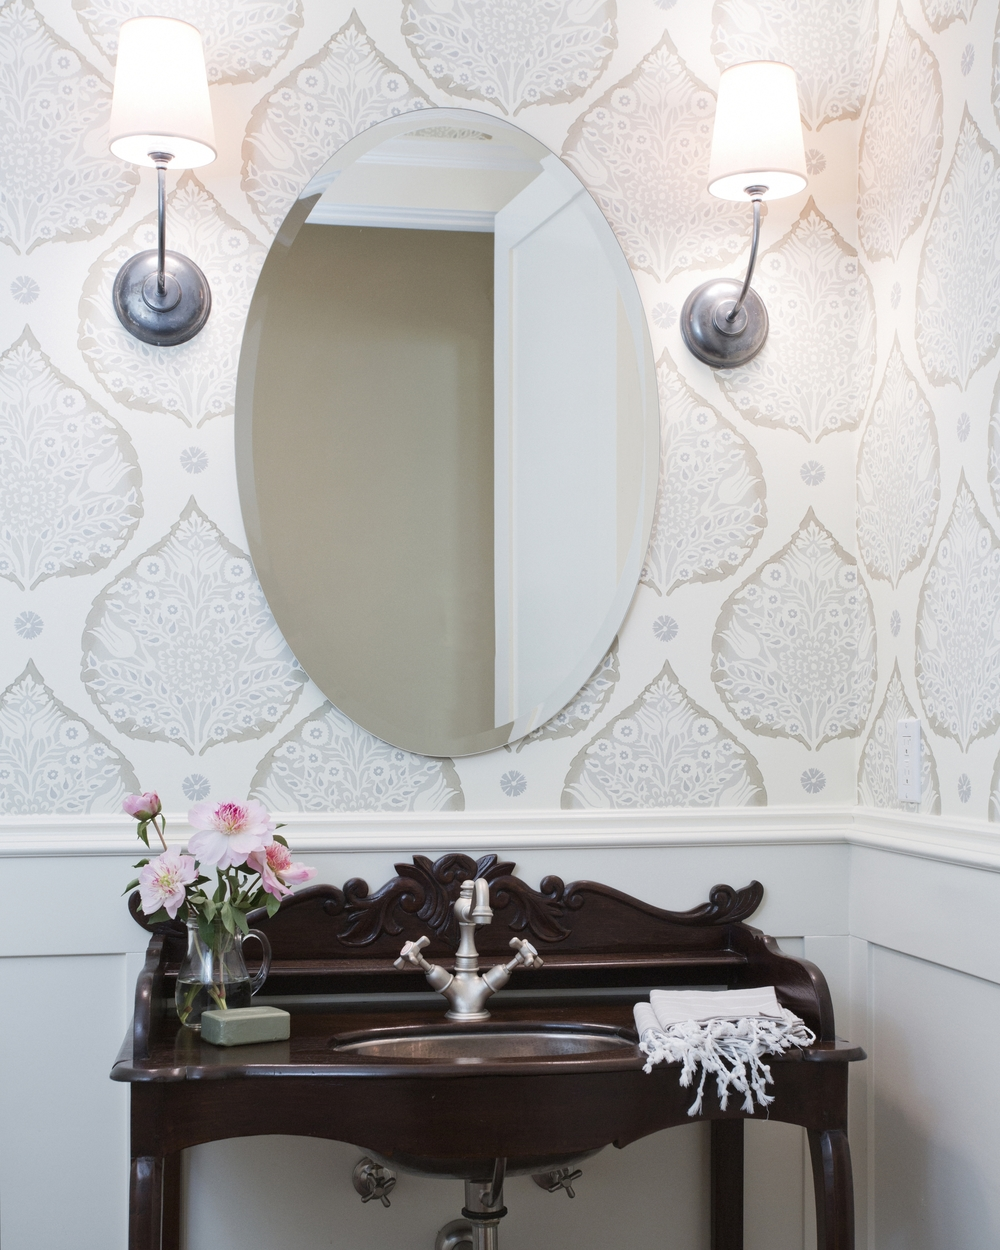 Wallpaper For Small Spaces Part - 24: Small Spaces Like Powder Rooms Are Perfect For Bold Prints! These Rooms Are  Often Windowless And Are Instantly Brightened With A Patterned Wall.